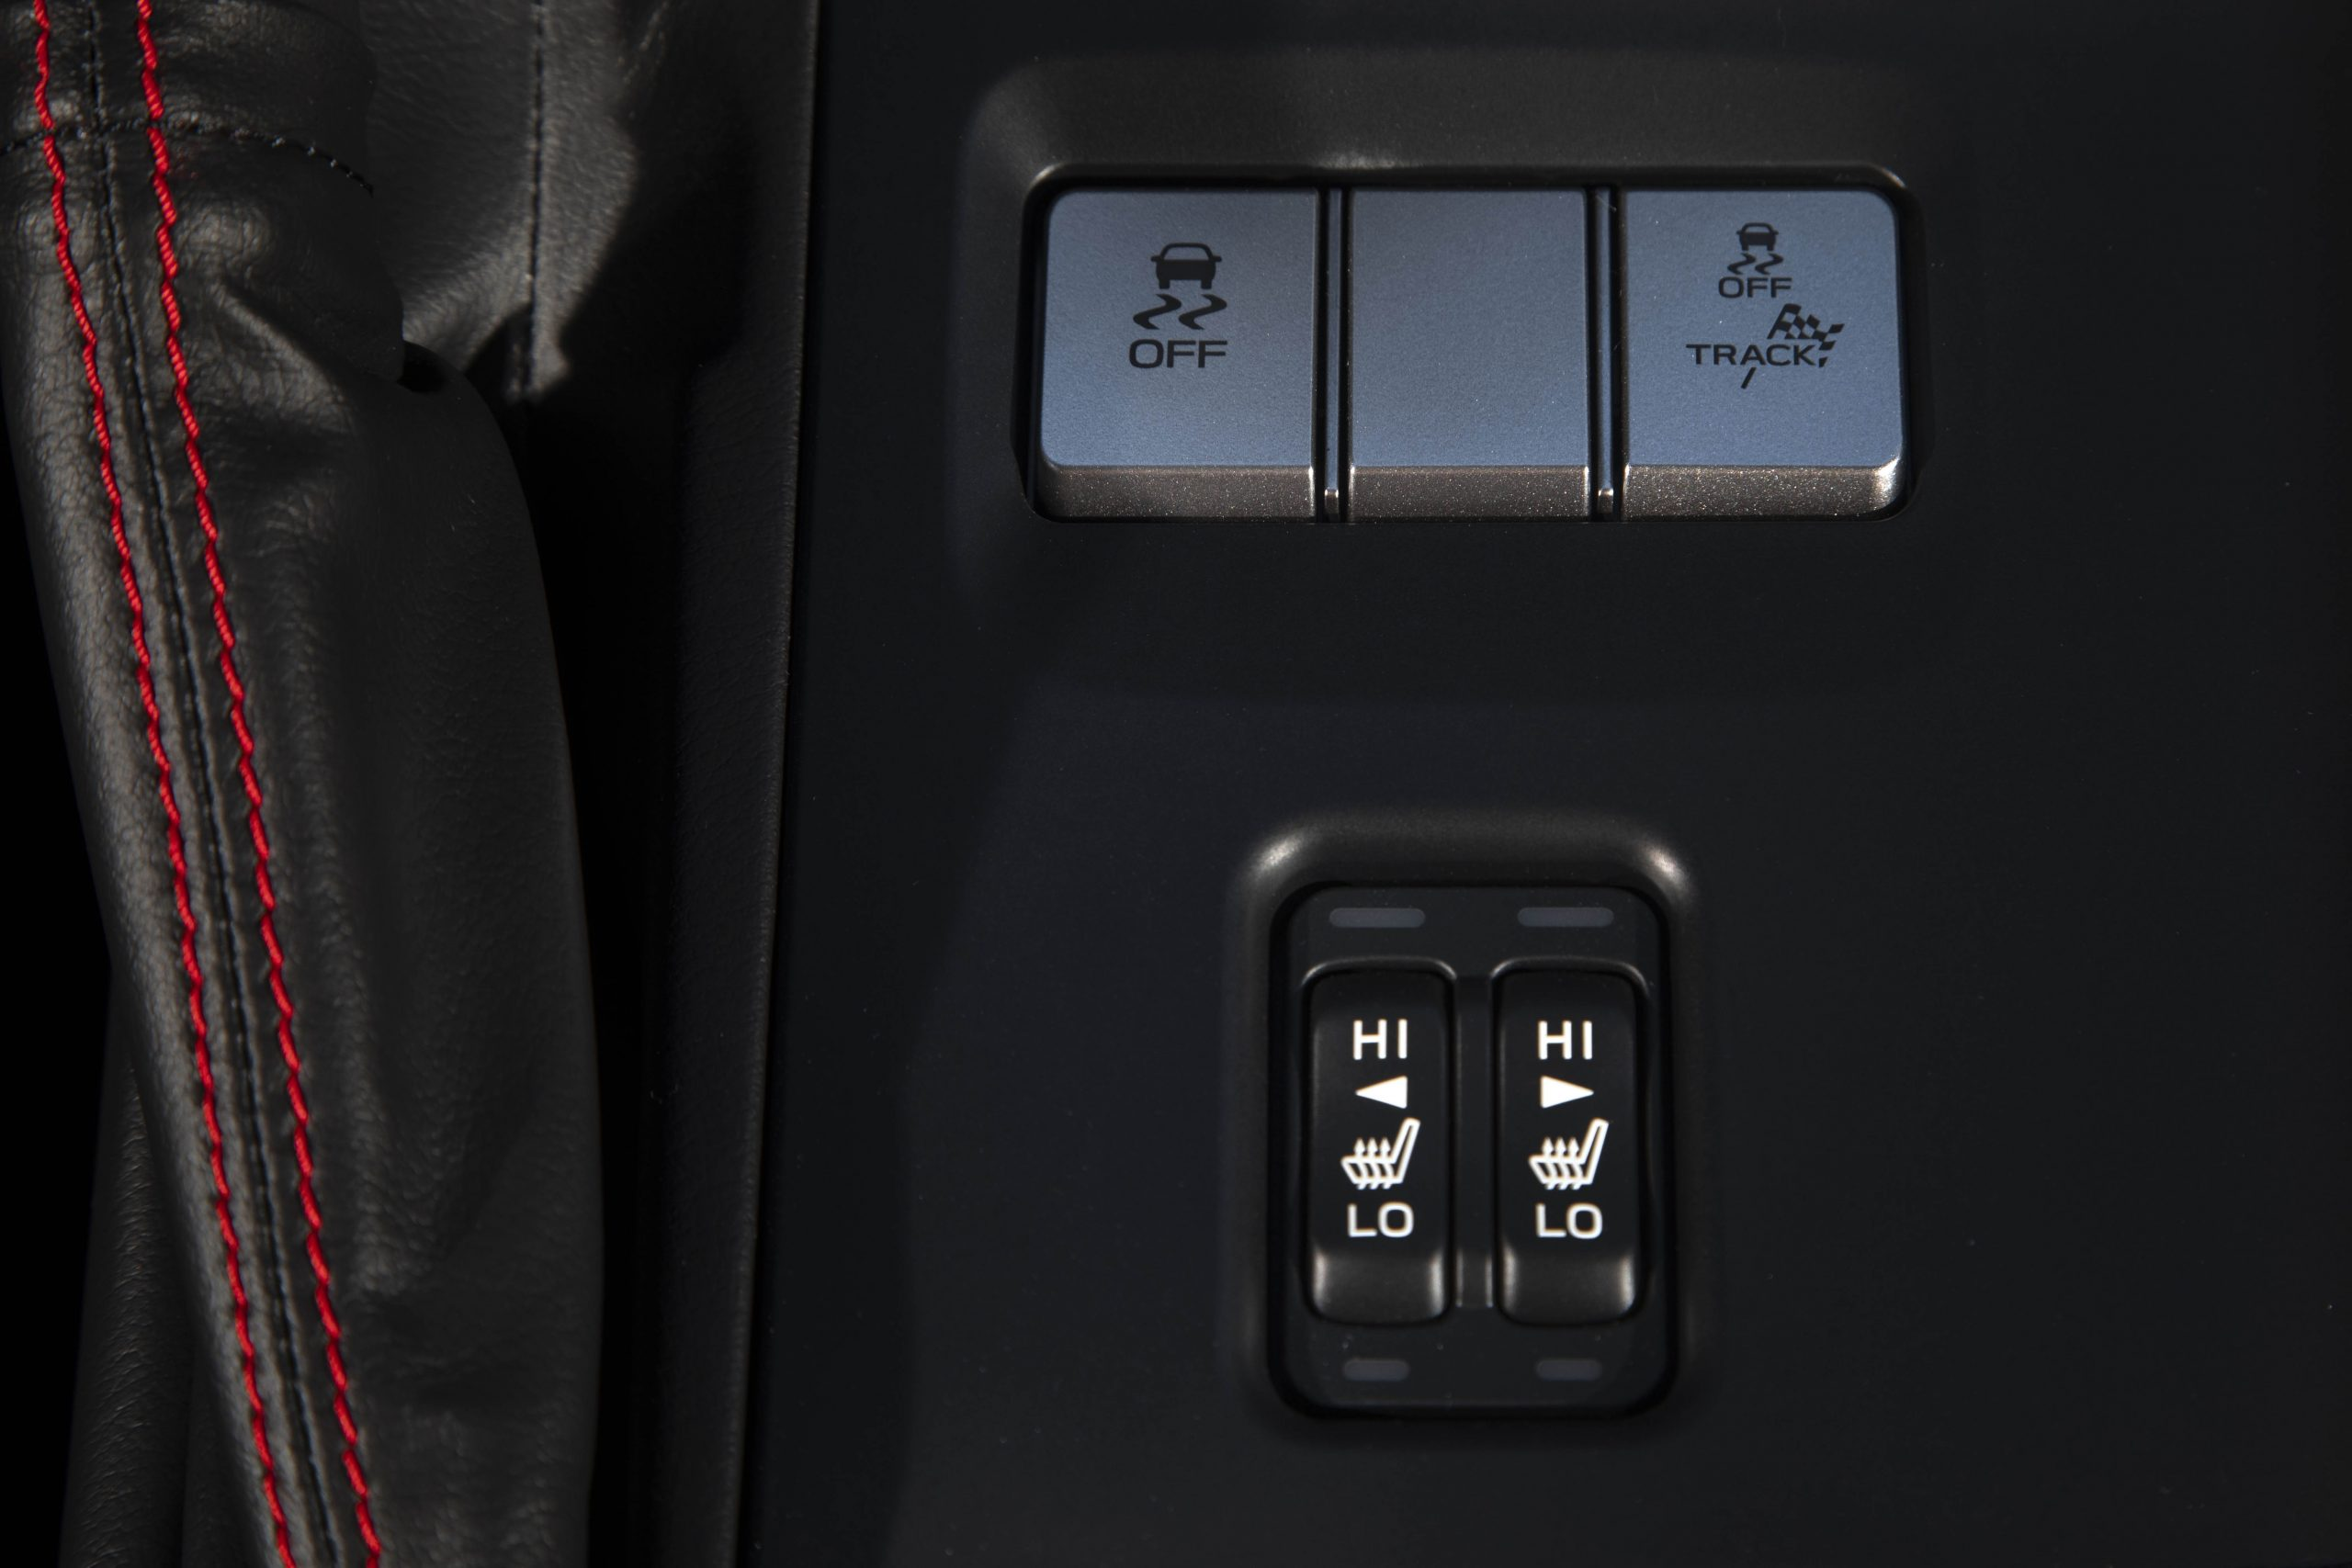 New 2022 Subaru BRZ interior drive modes button